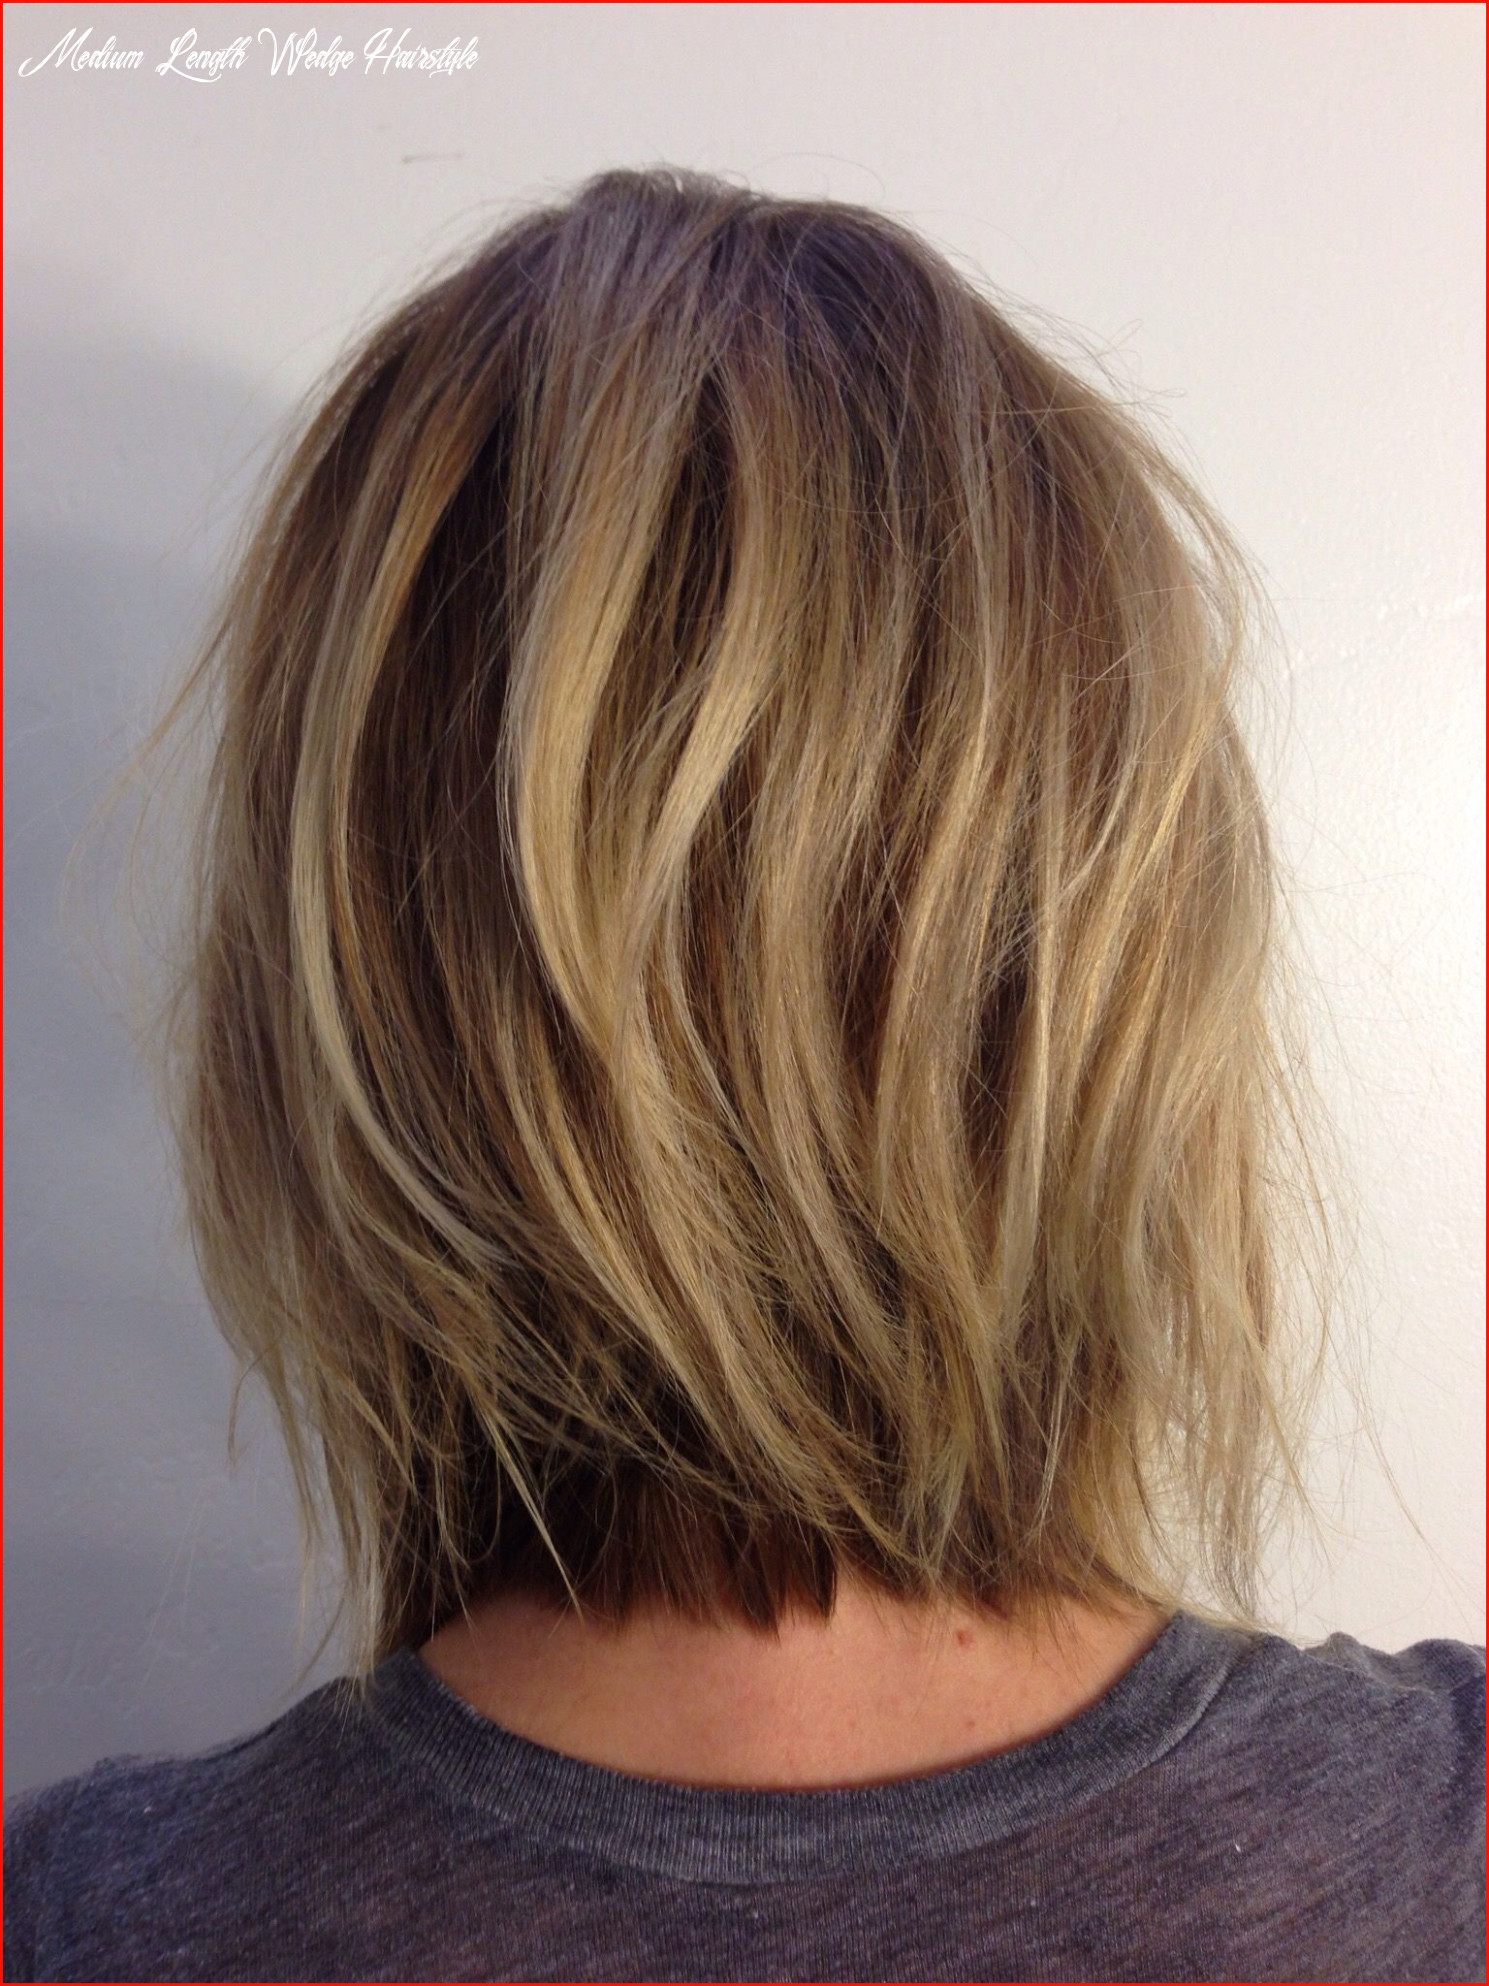 Cool layered wedge hairstyle photos of hairstyles style 10